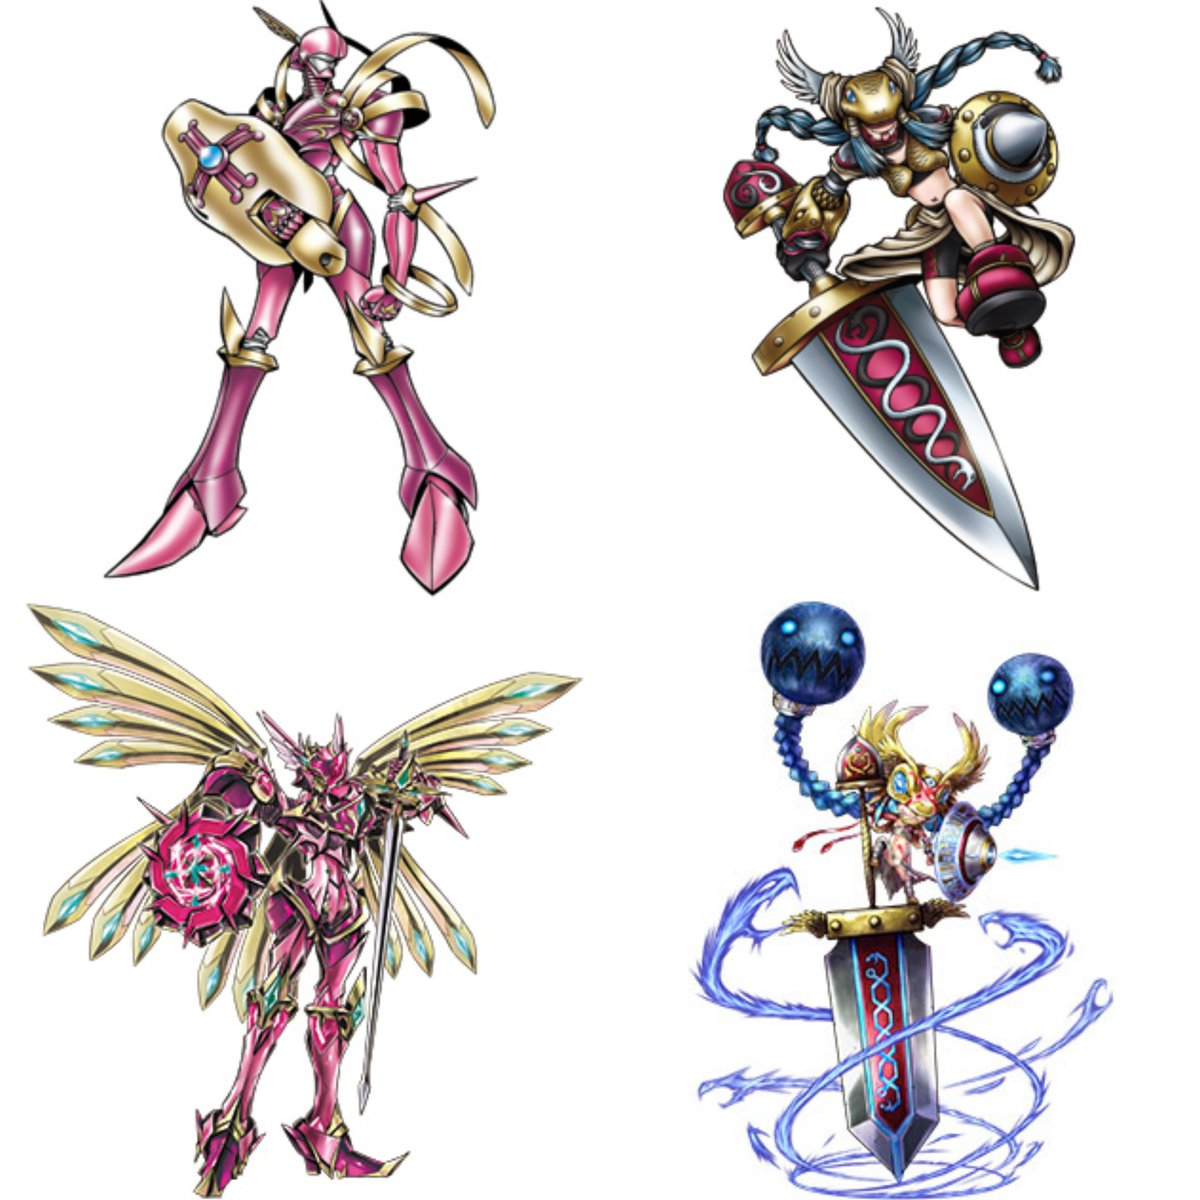 Digimon Tweets On Twitter For Digital Monster X The Digimon Web Did The Digimon X Antibody Super Vote The Fans Can Choose 2 Digimon Out Of 50 To Have An X Evolution For Digital